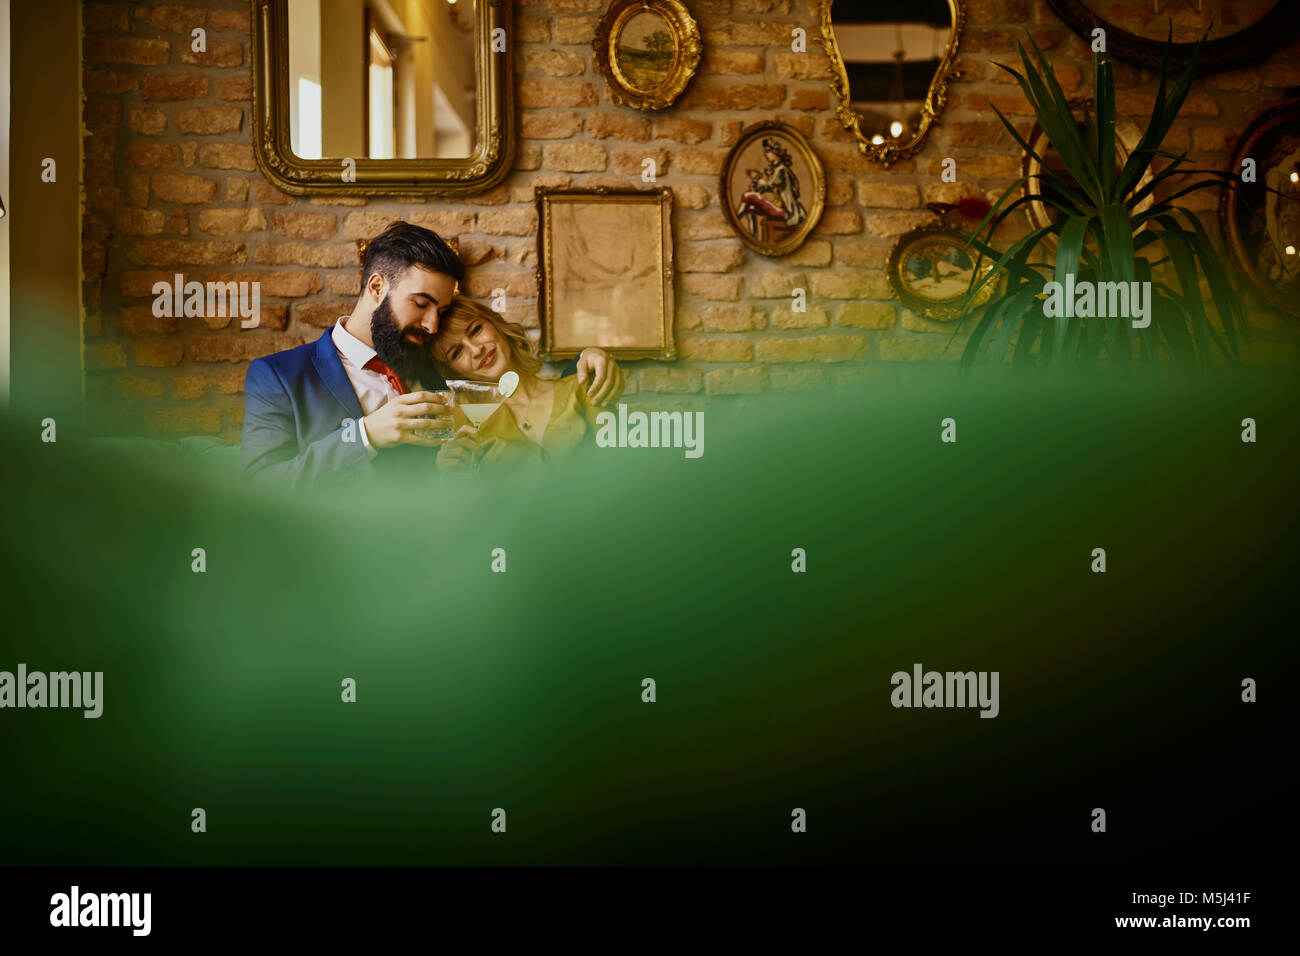 Couple élégant avec boissons sitting on couch hugging Photo Stock